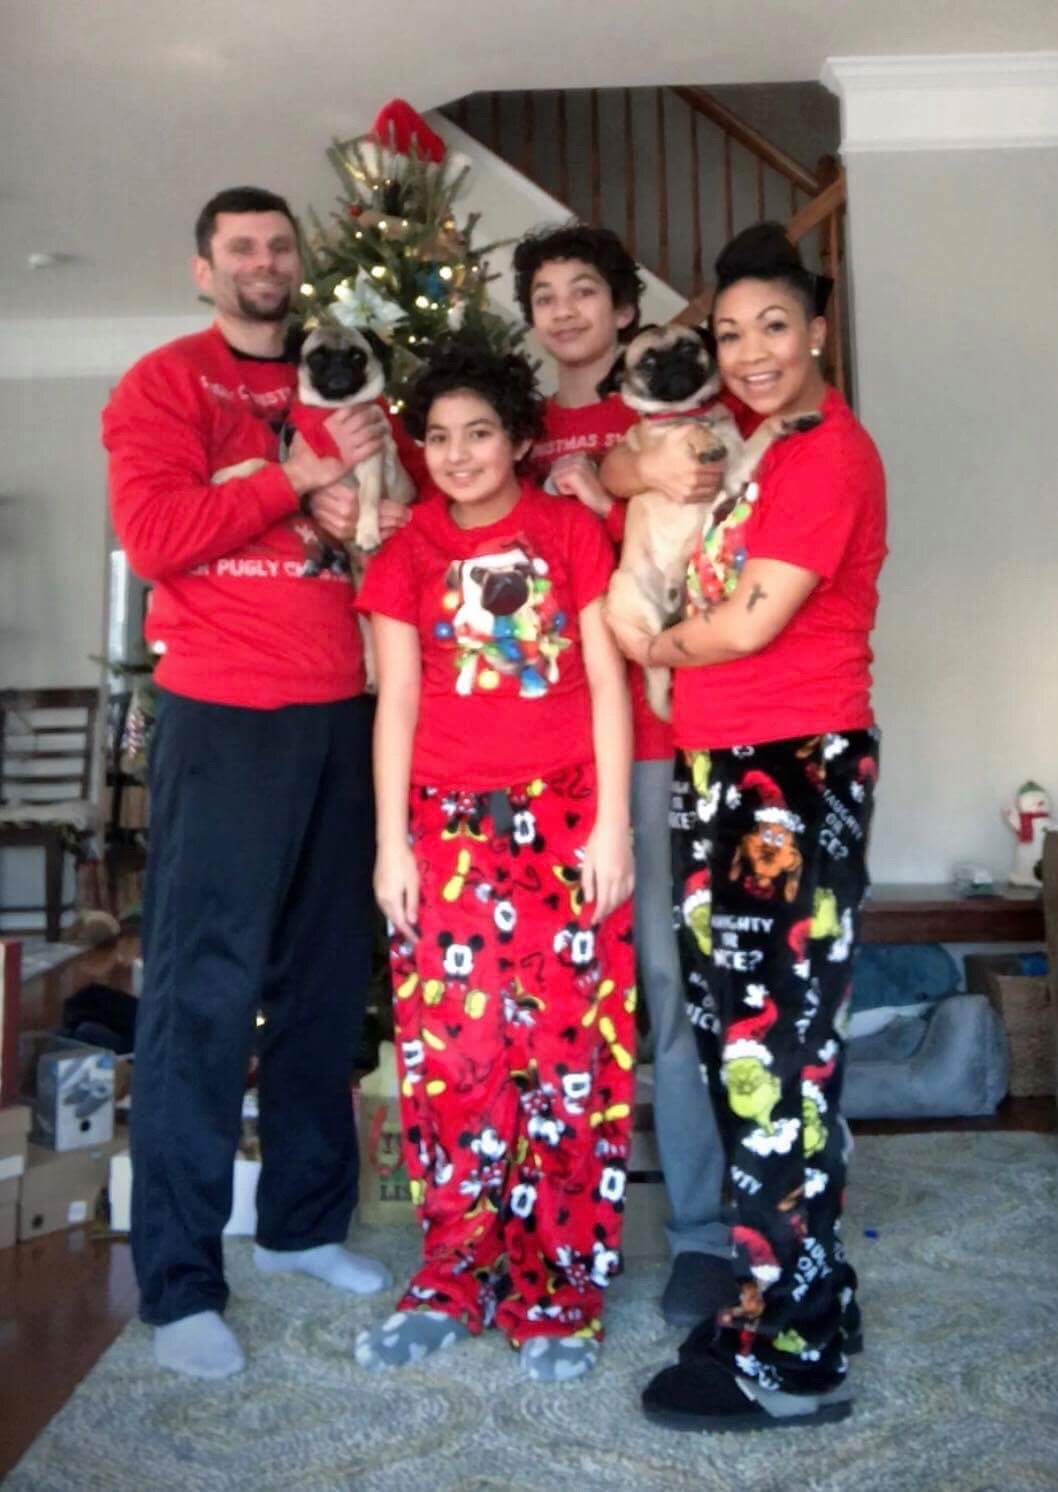 Nikki and family